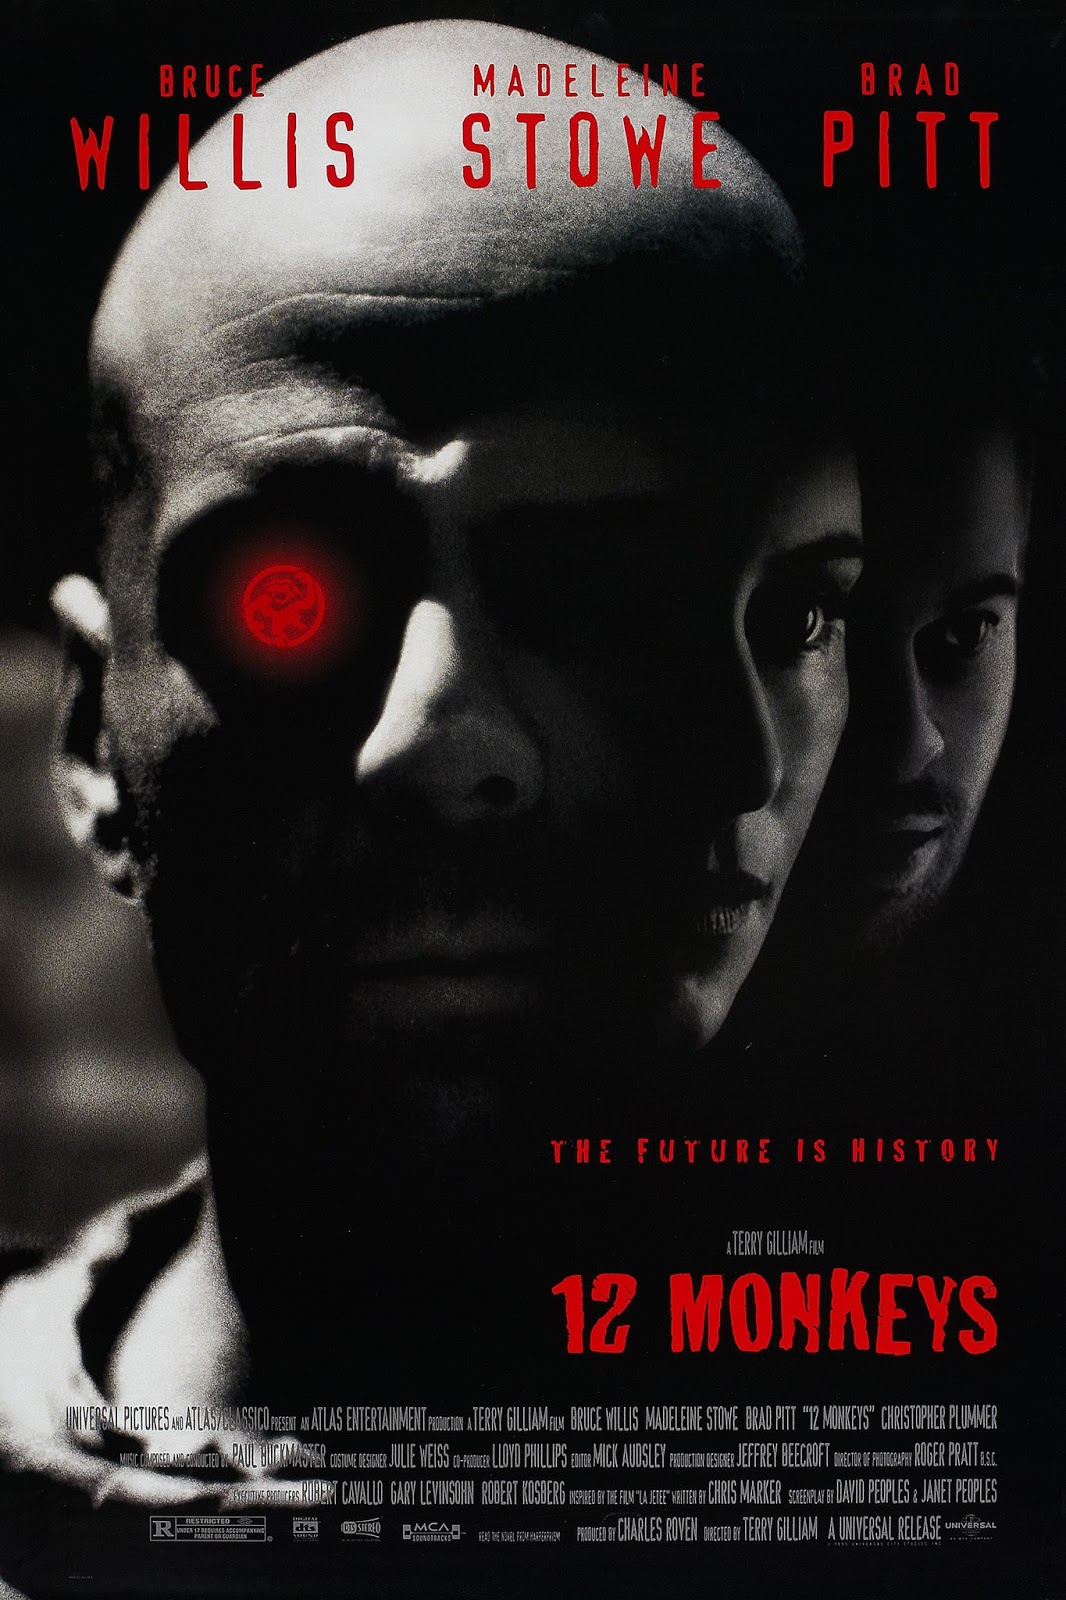 The theatrical release poster for 12 Monkeys. It is a black and white photomontage of three of the main characters' faces. From left to right: Bruce Willis, Madeleine Stowe and Brad Pitt are shown. Willis is the most prominent of the three and his eyes are covered by shadows. The only colour in the image is a glowing red monkey symbol where Willis' right eye would be.